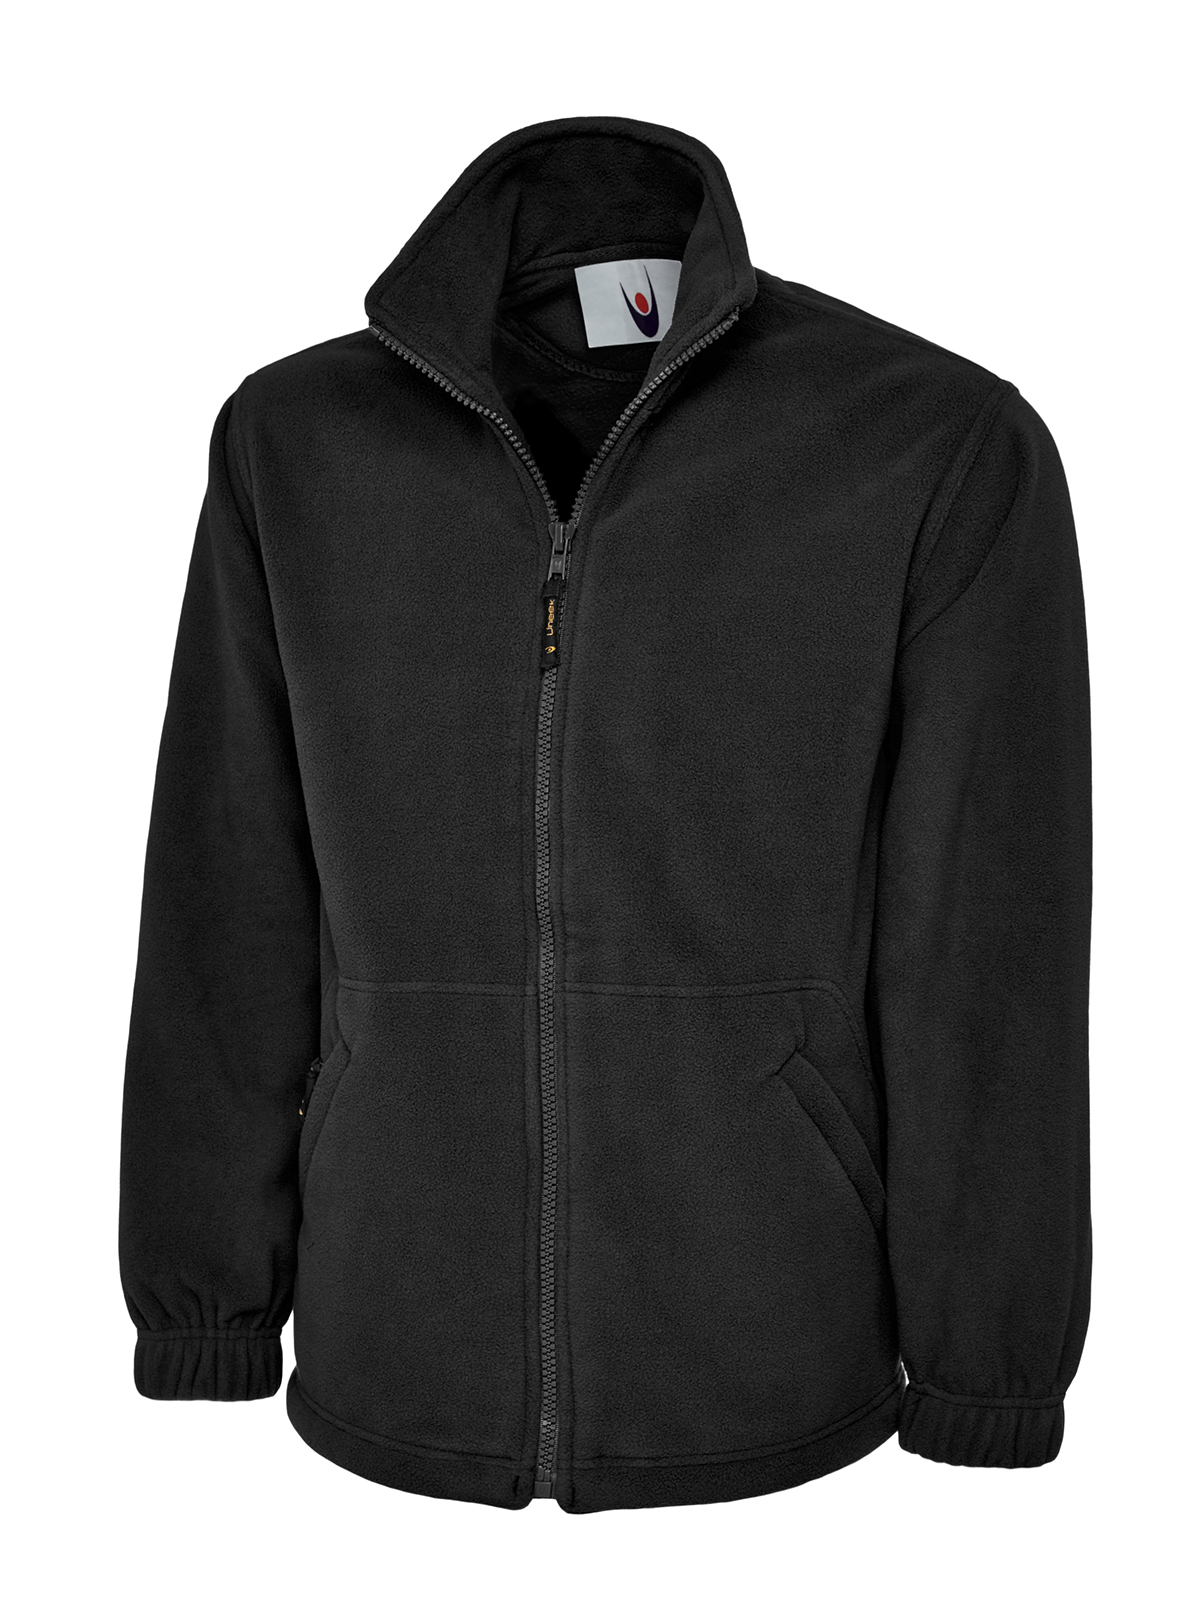 Uneek UC601 Premium Full Zip Fleece Jacket A